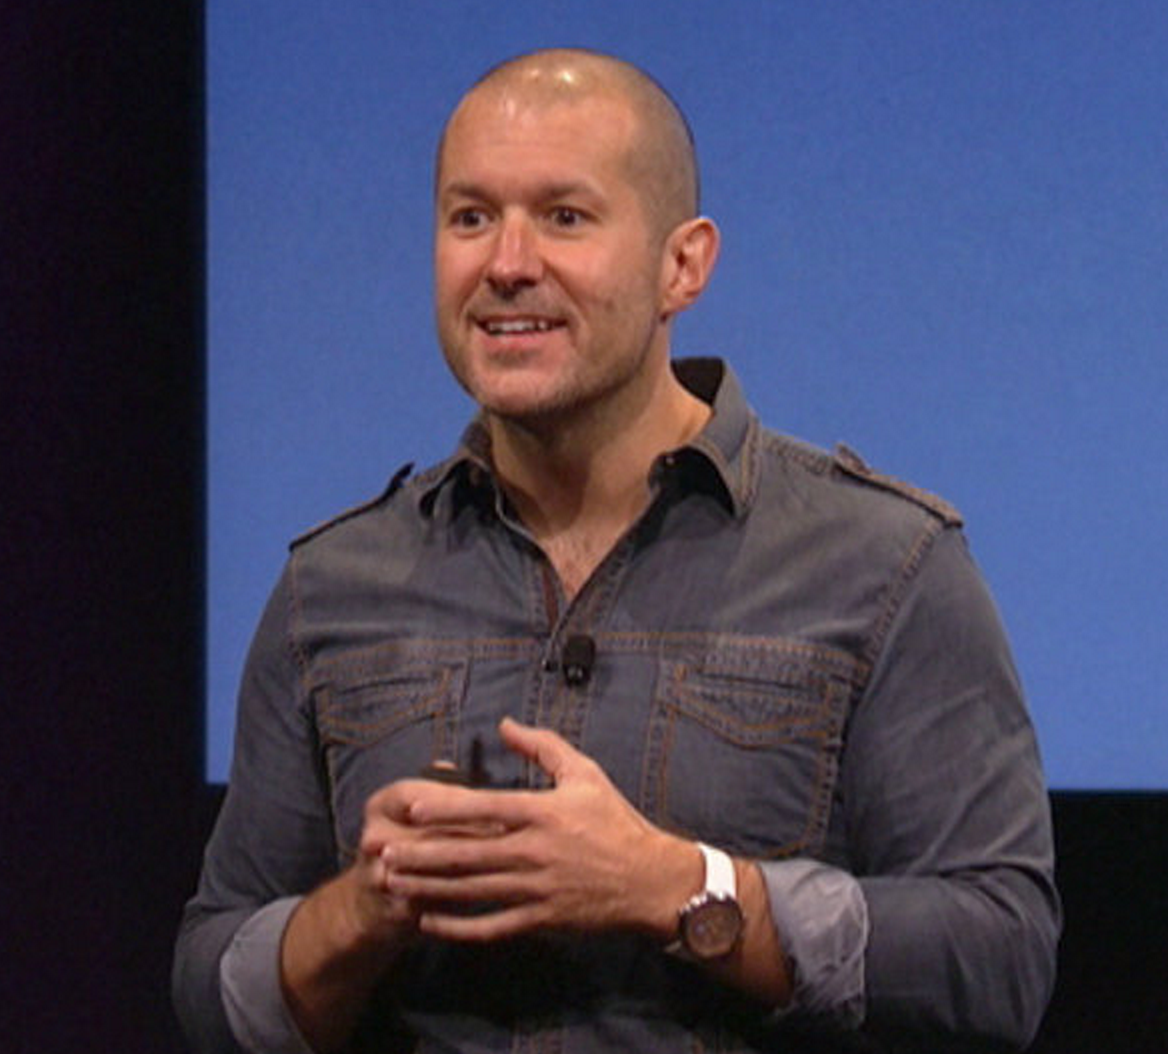 Jony-Ive-Excited-on-stage